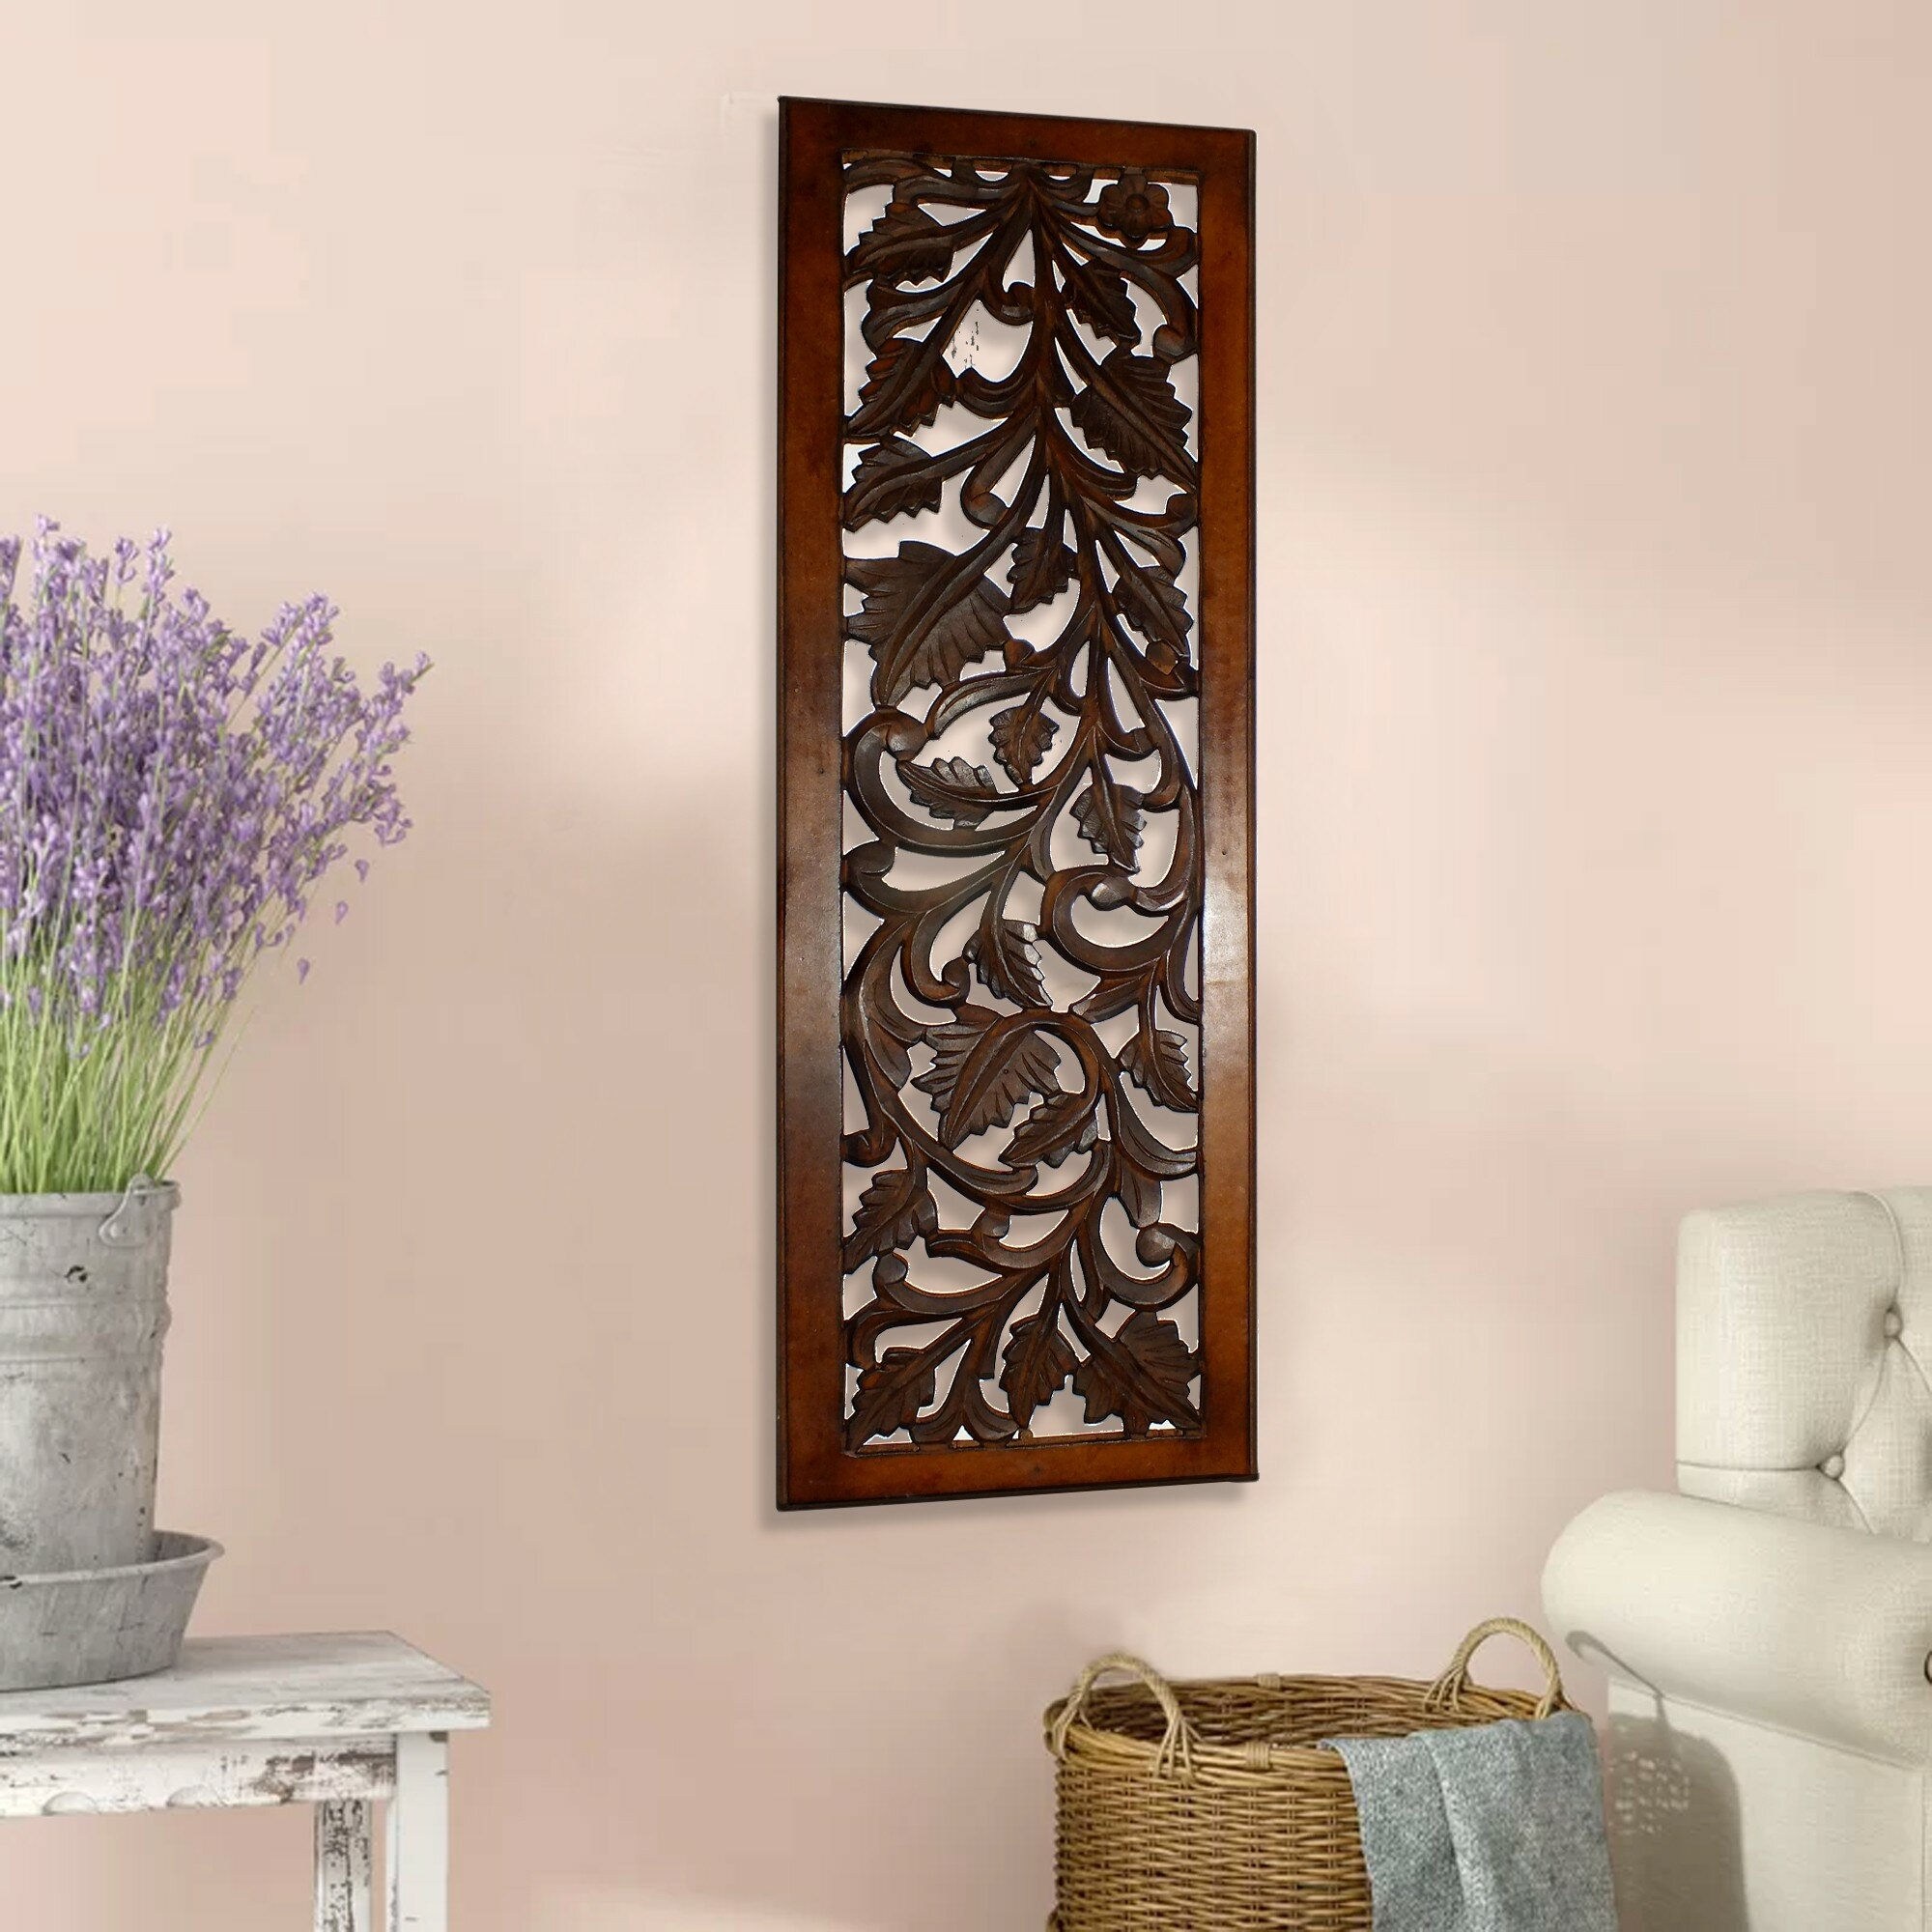 Mango Wood Panel With Leaves And Scroll Work Motif Wall Décor